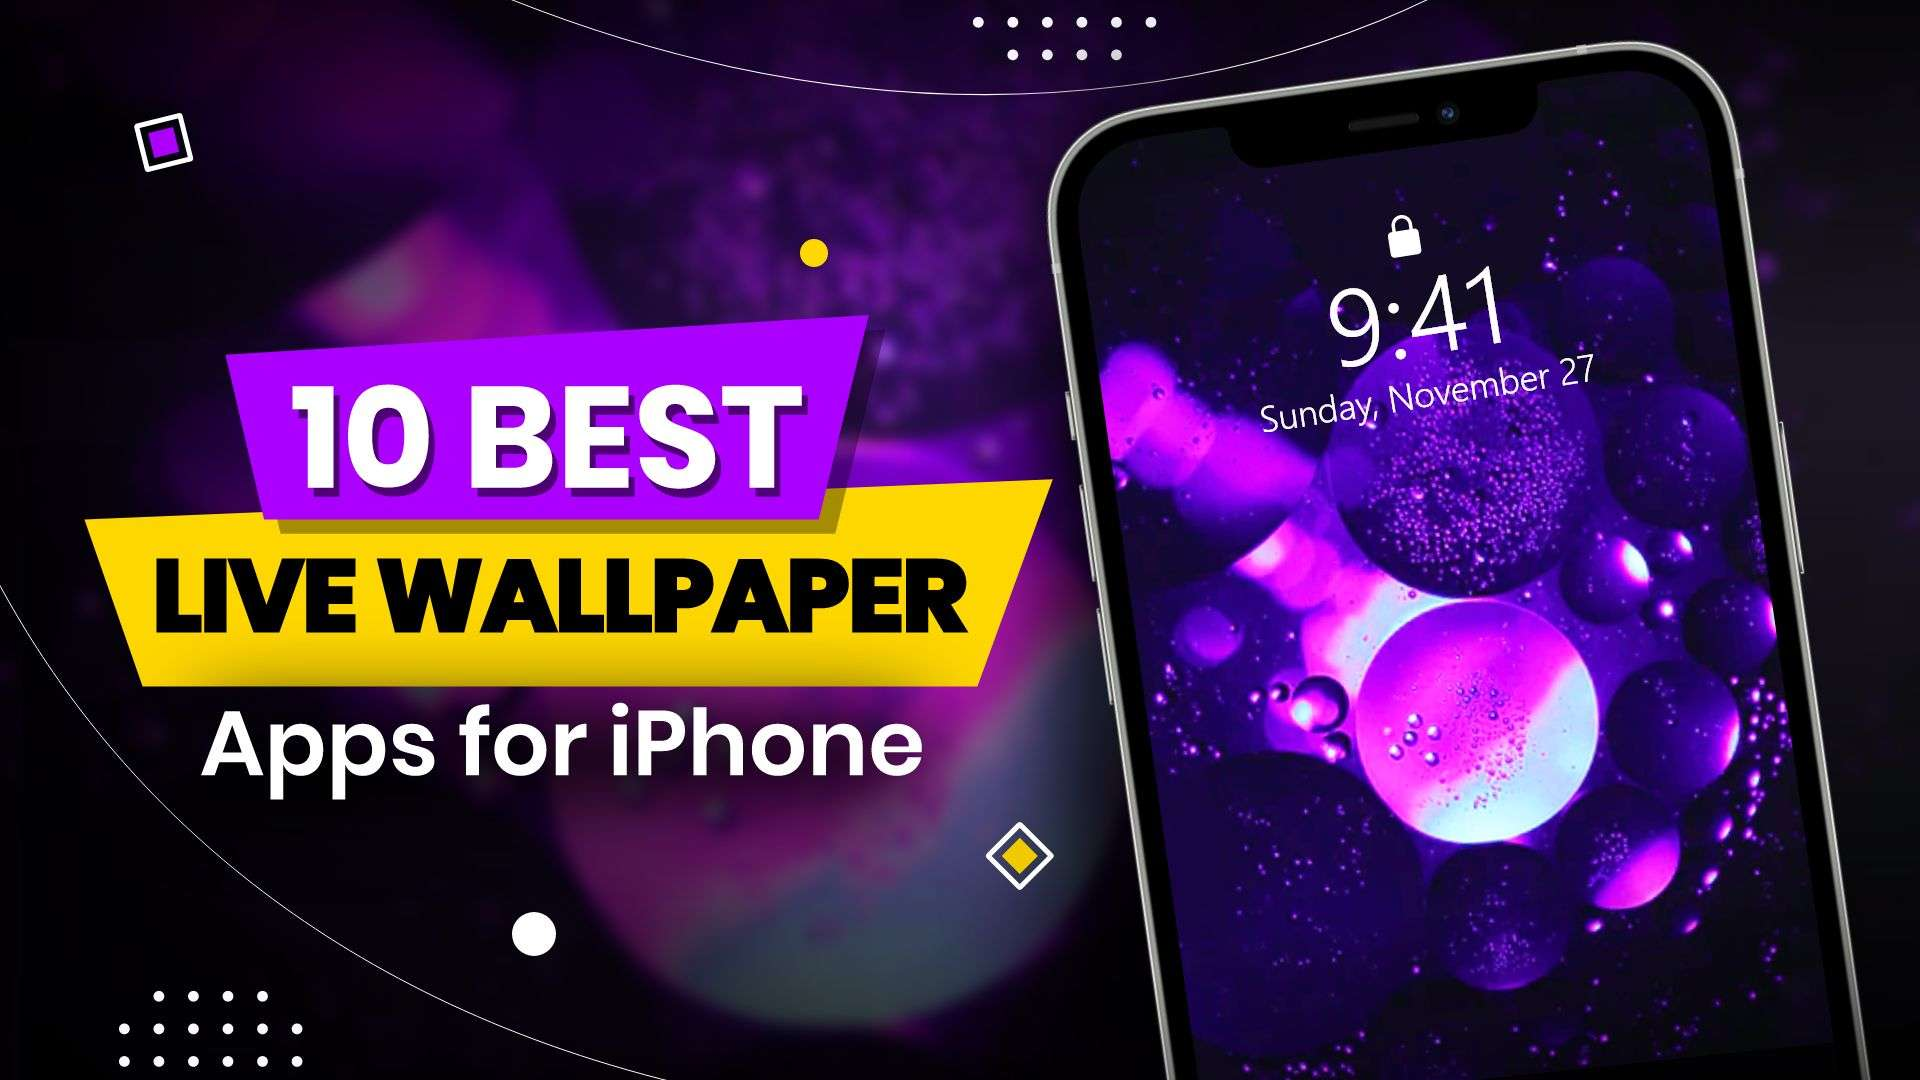 best live wallpaper apps for iPhone